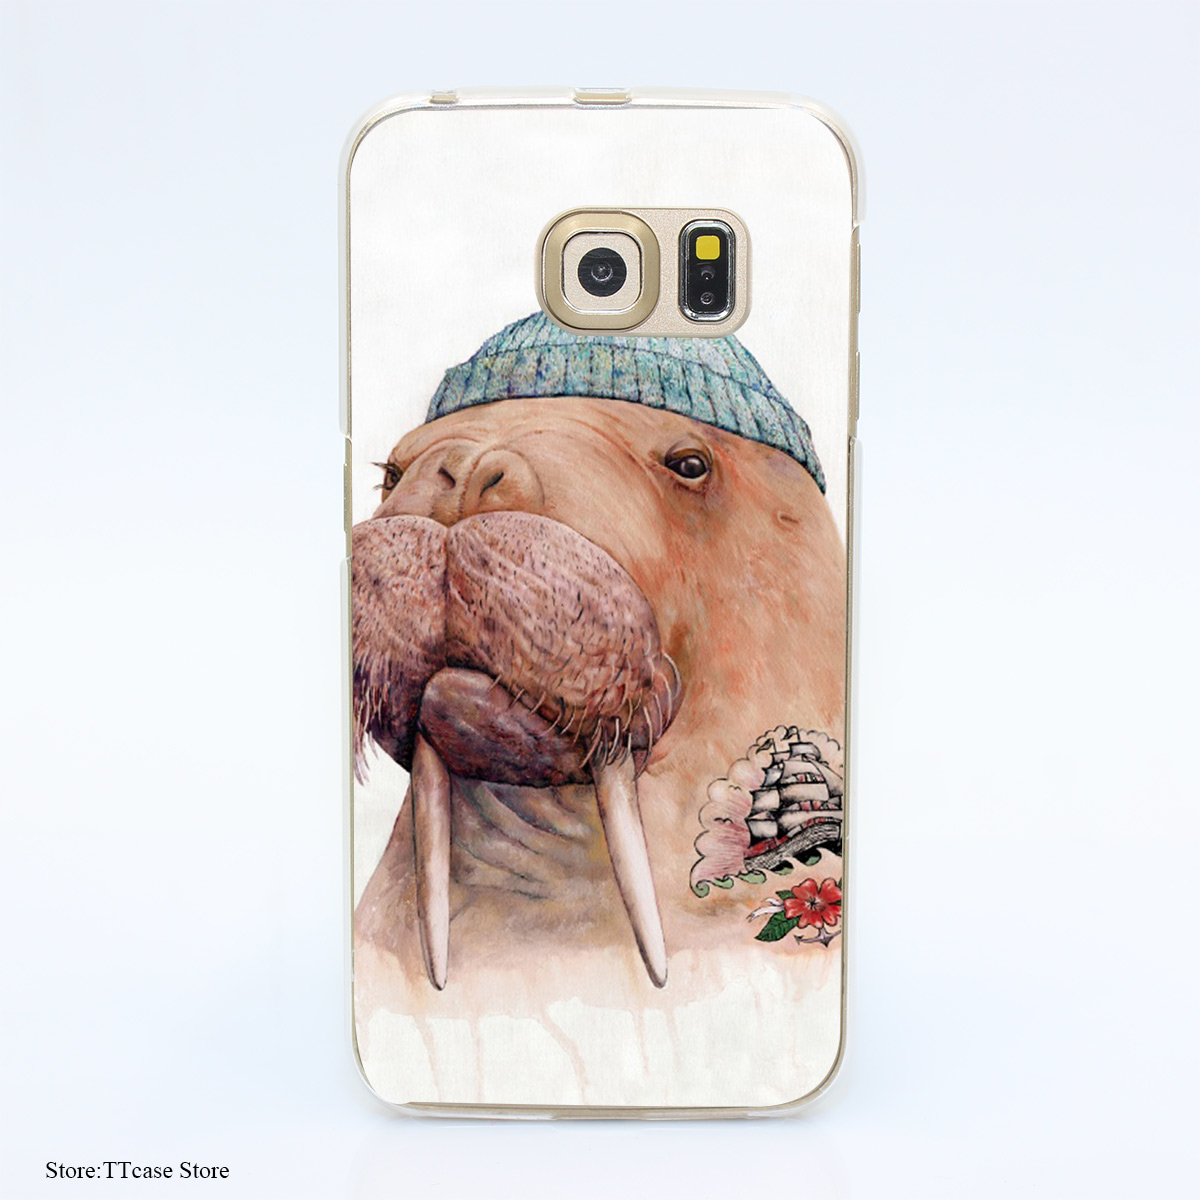 3281G Tattooed Walrus Print Hard Transparent Case Cover for Galaxy S3 S4 S5 & Mini S6 S7 & edge